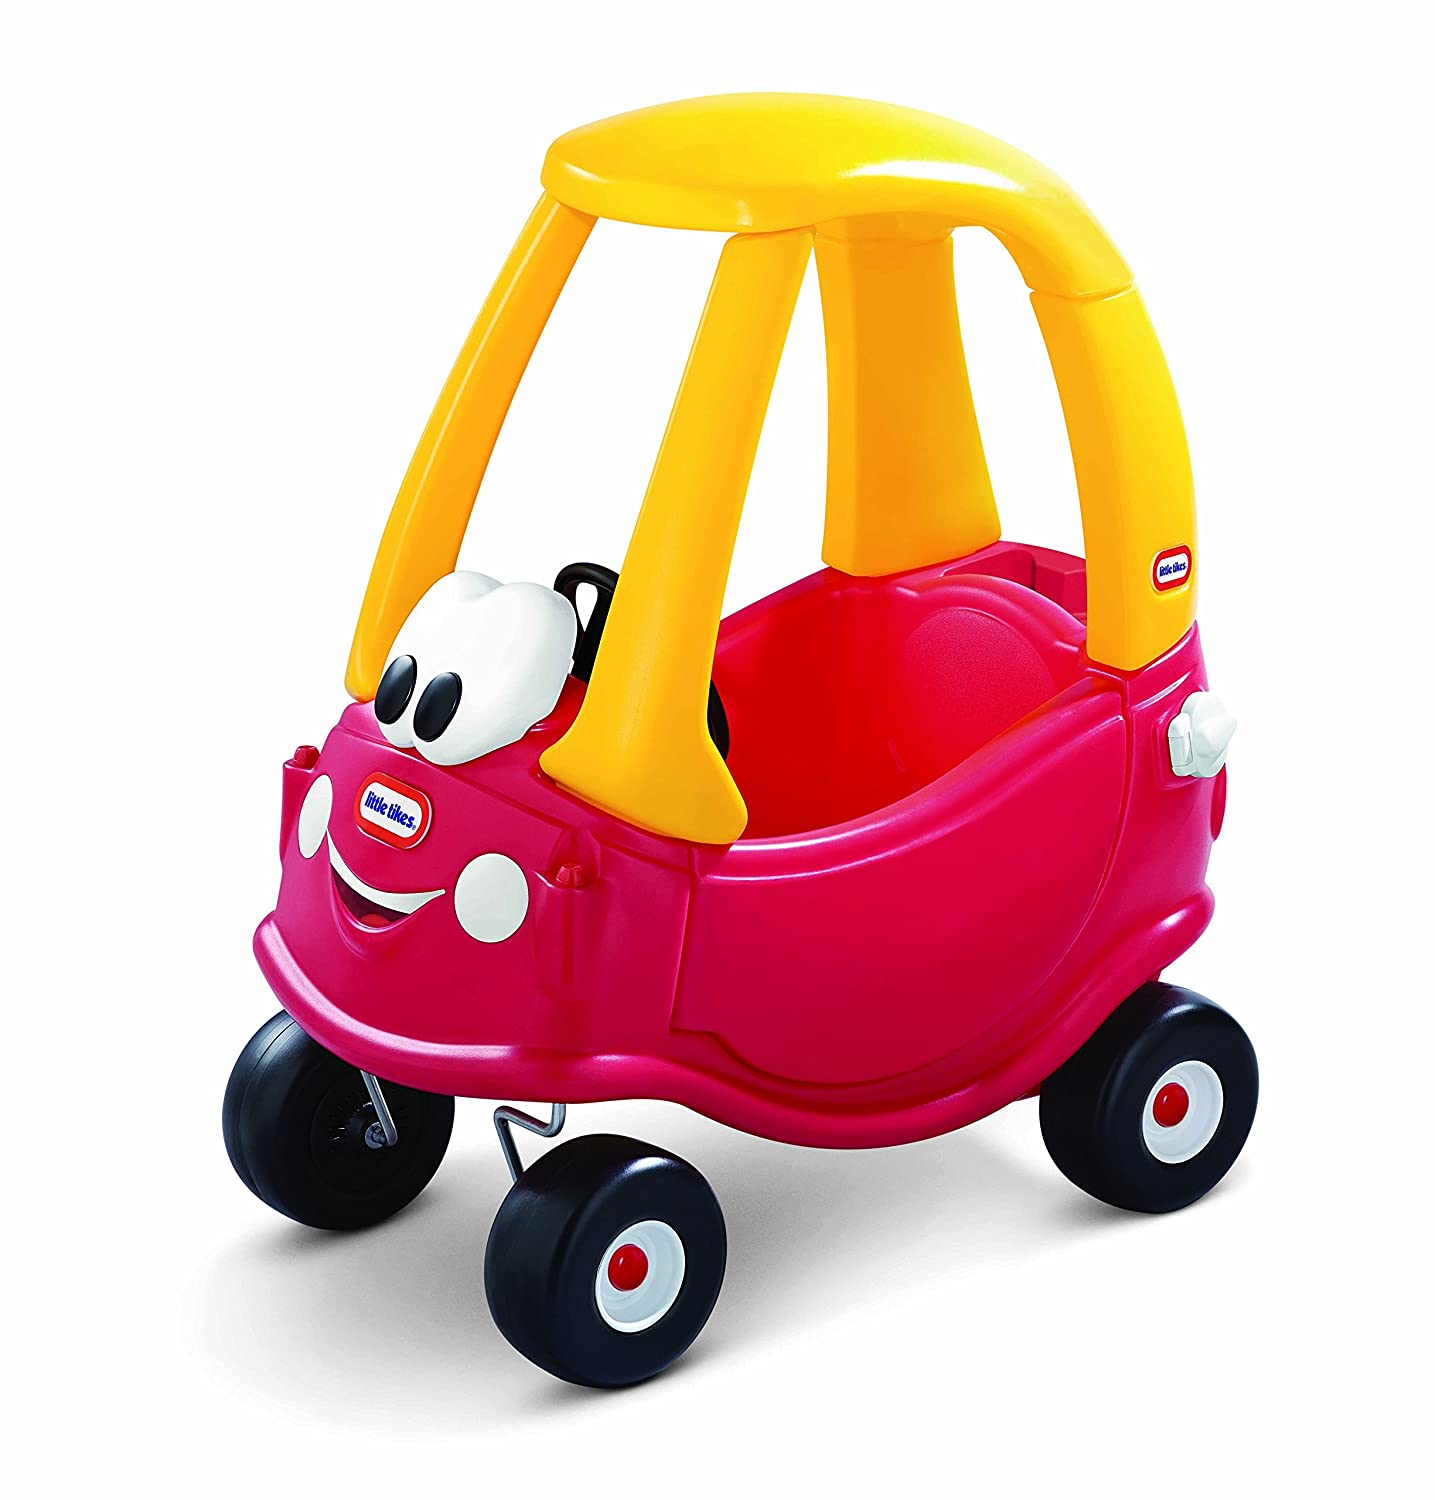 Red Cozy Coupe